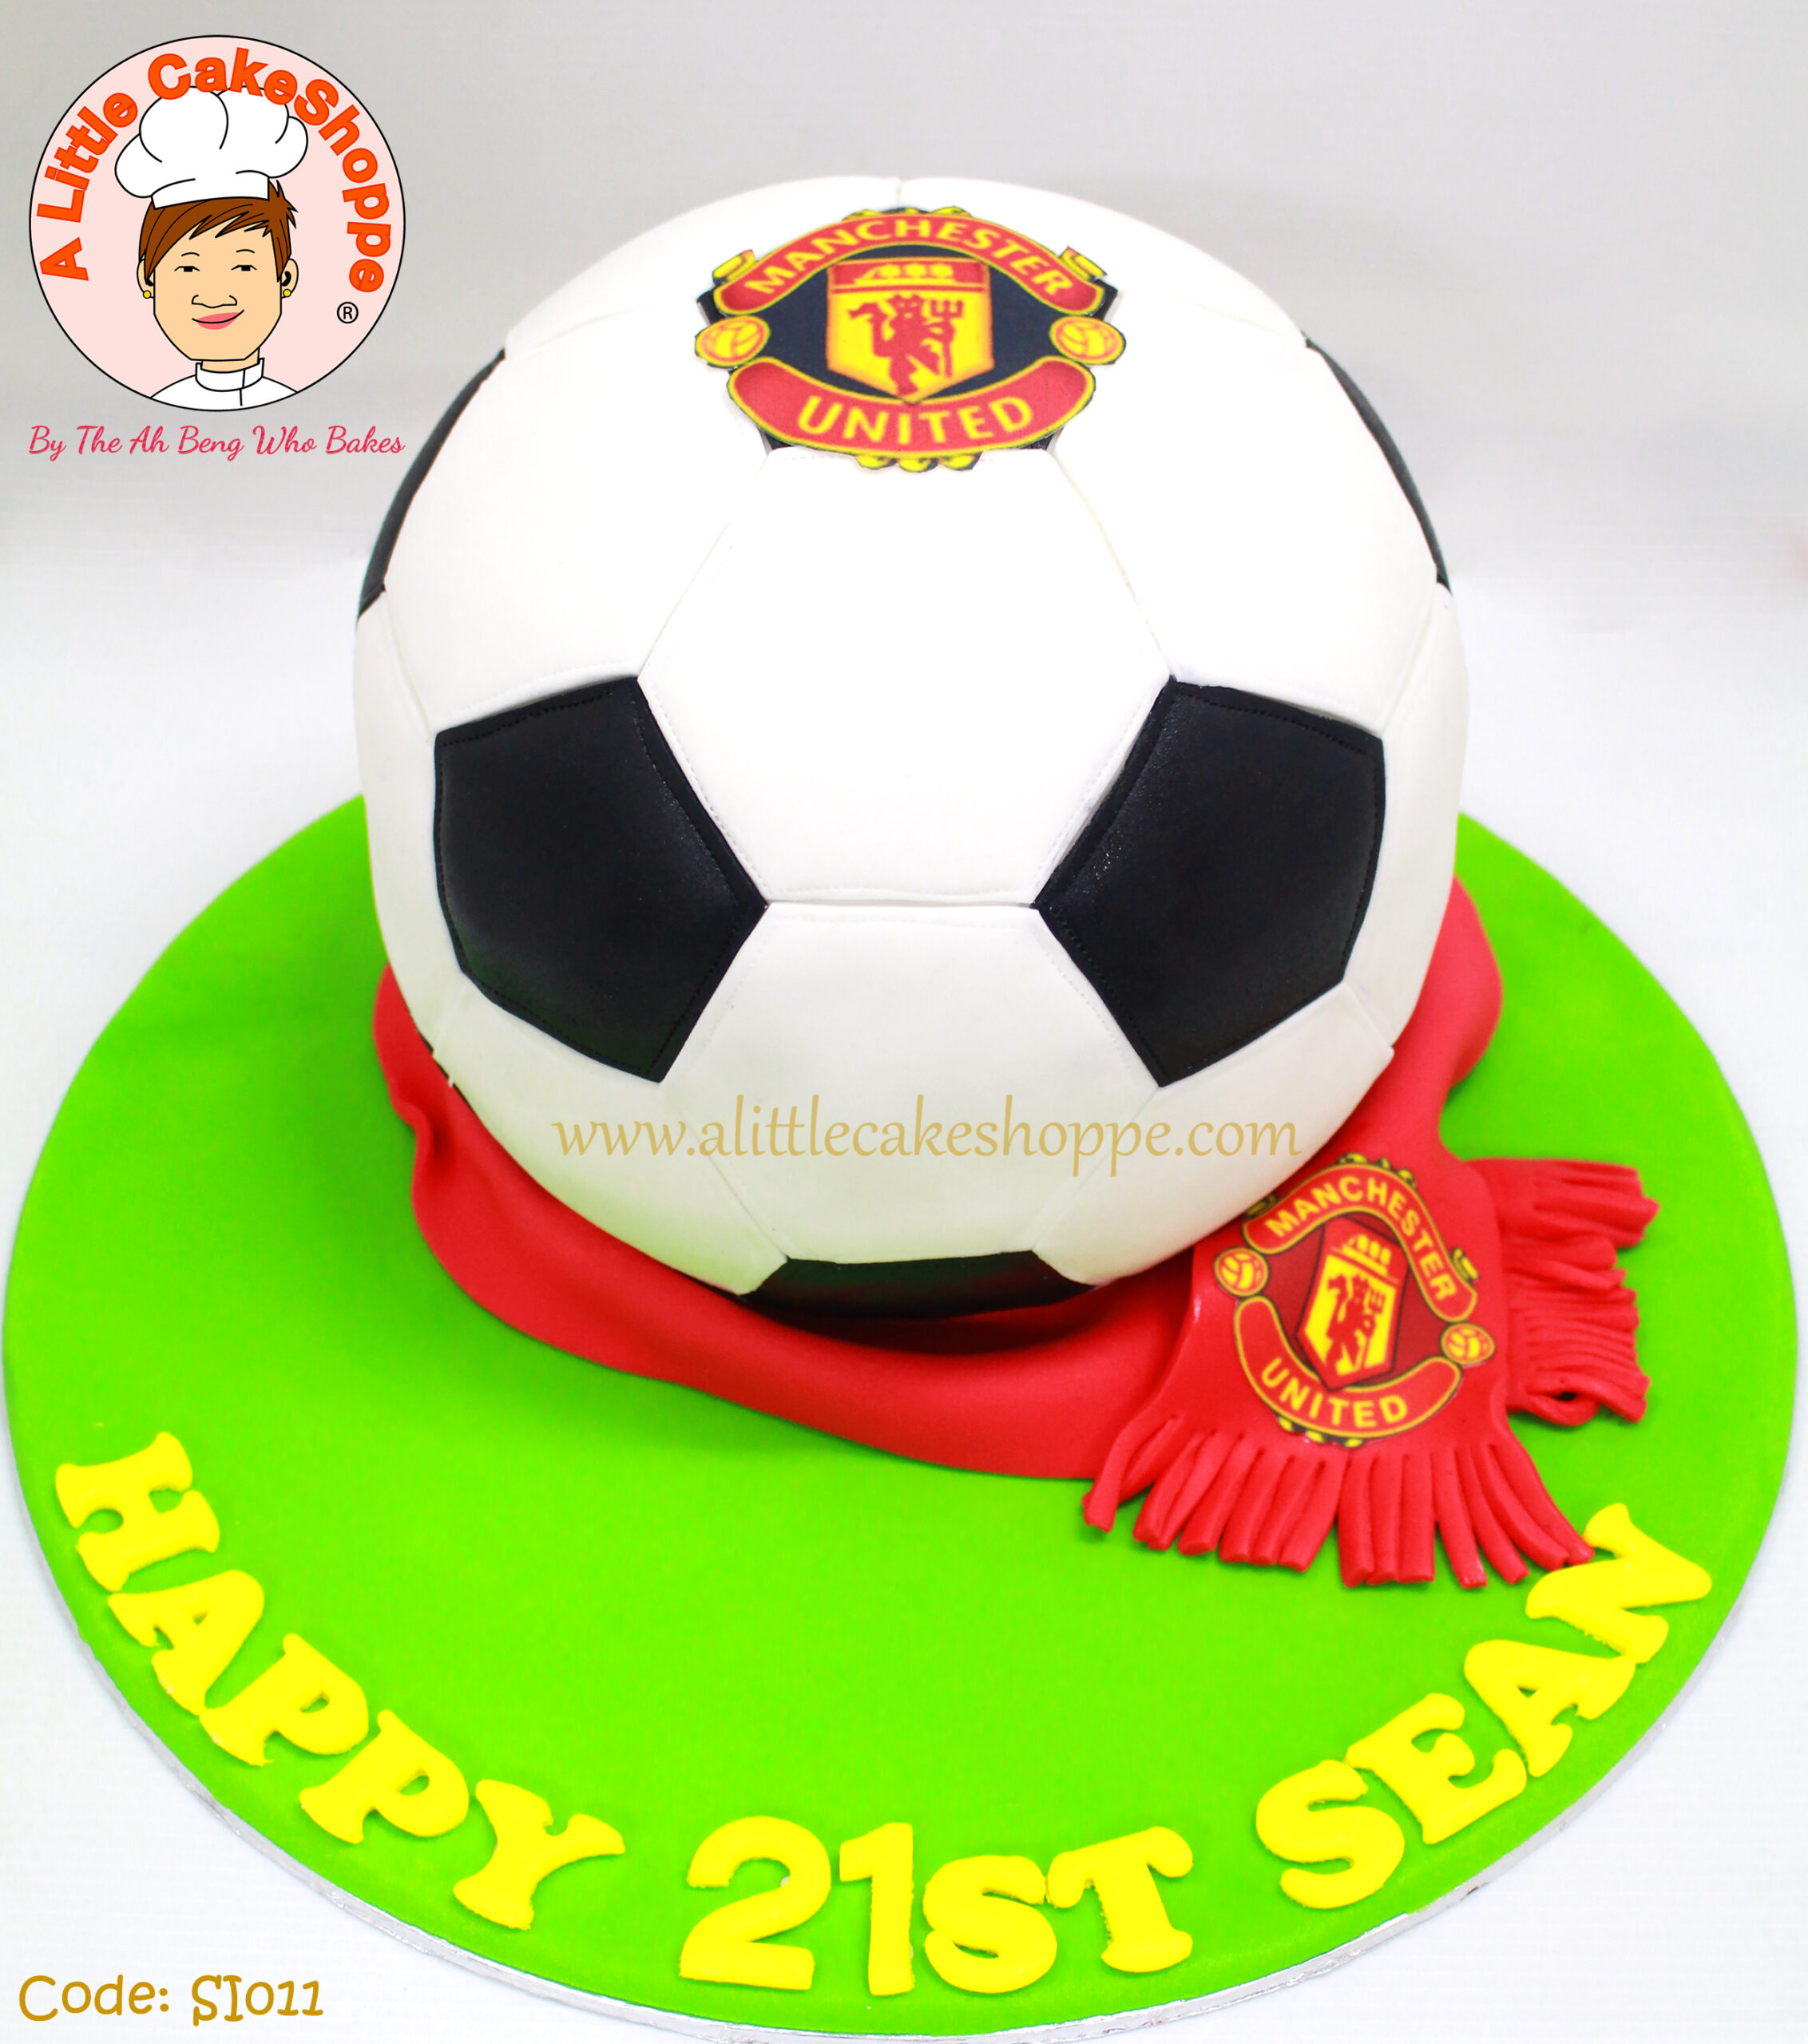 Best Customised Cake Singapore custom cake 2D 3D birthday cake cupcakes desserts wedding corporate events anniversary 1st birthday 21st birthday fondant fresh cream buttercream cakes alittlecakeshoppe a little cake shoppe compliments review singapore bakers SG cakeshop ah beng who bakes sports soccer football man u manchester united